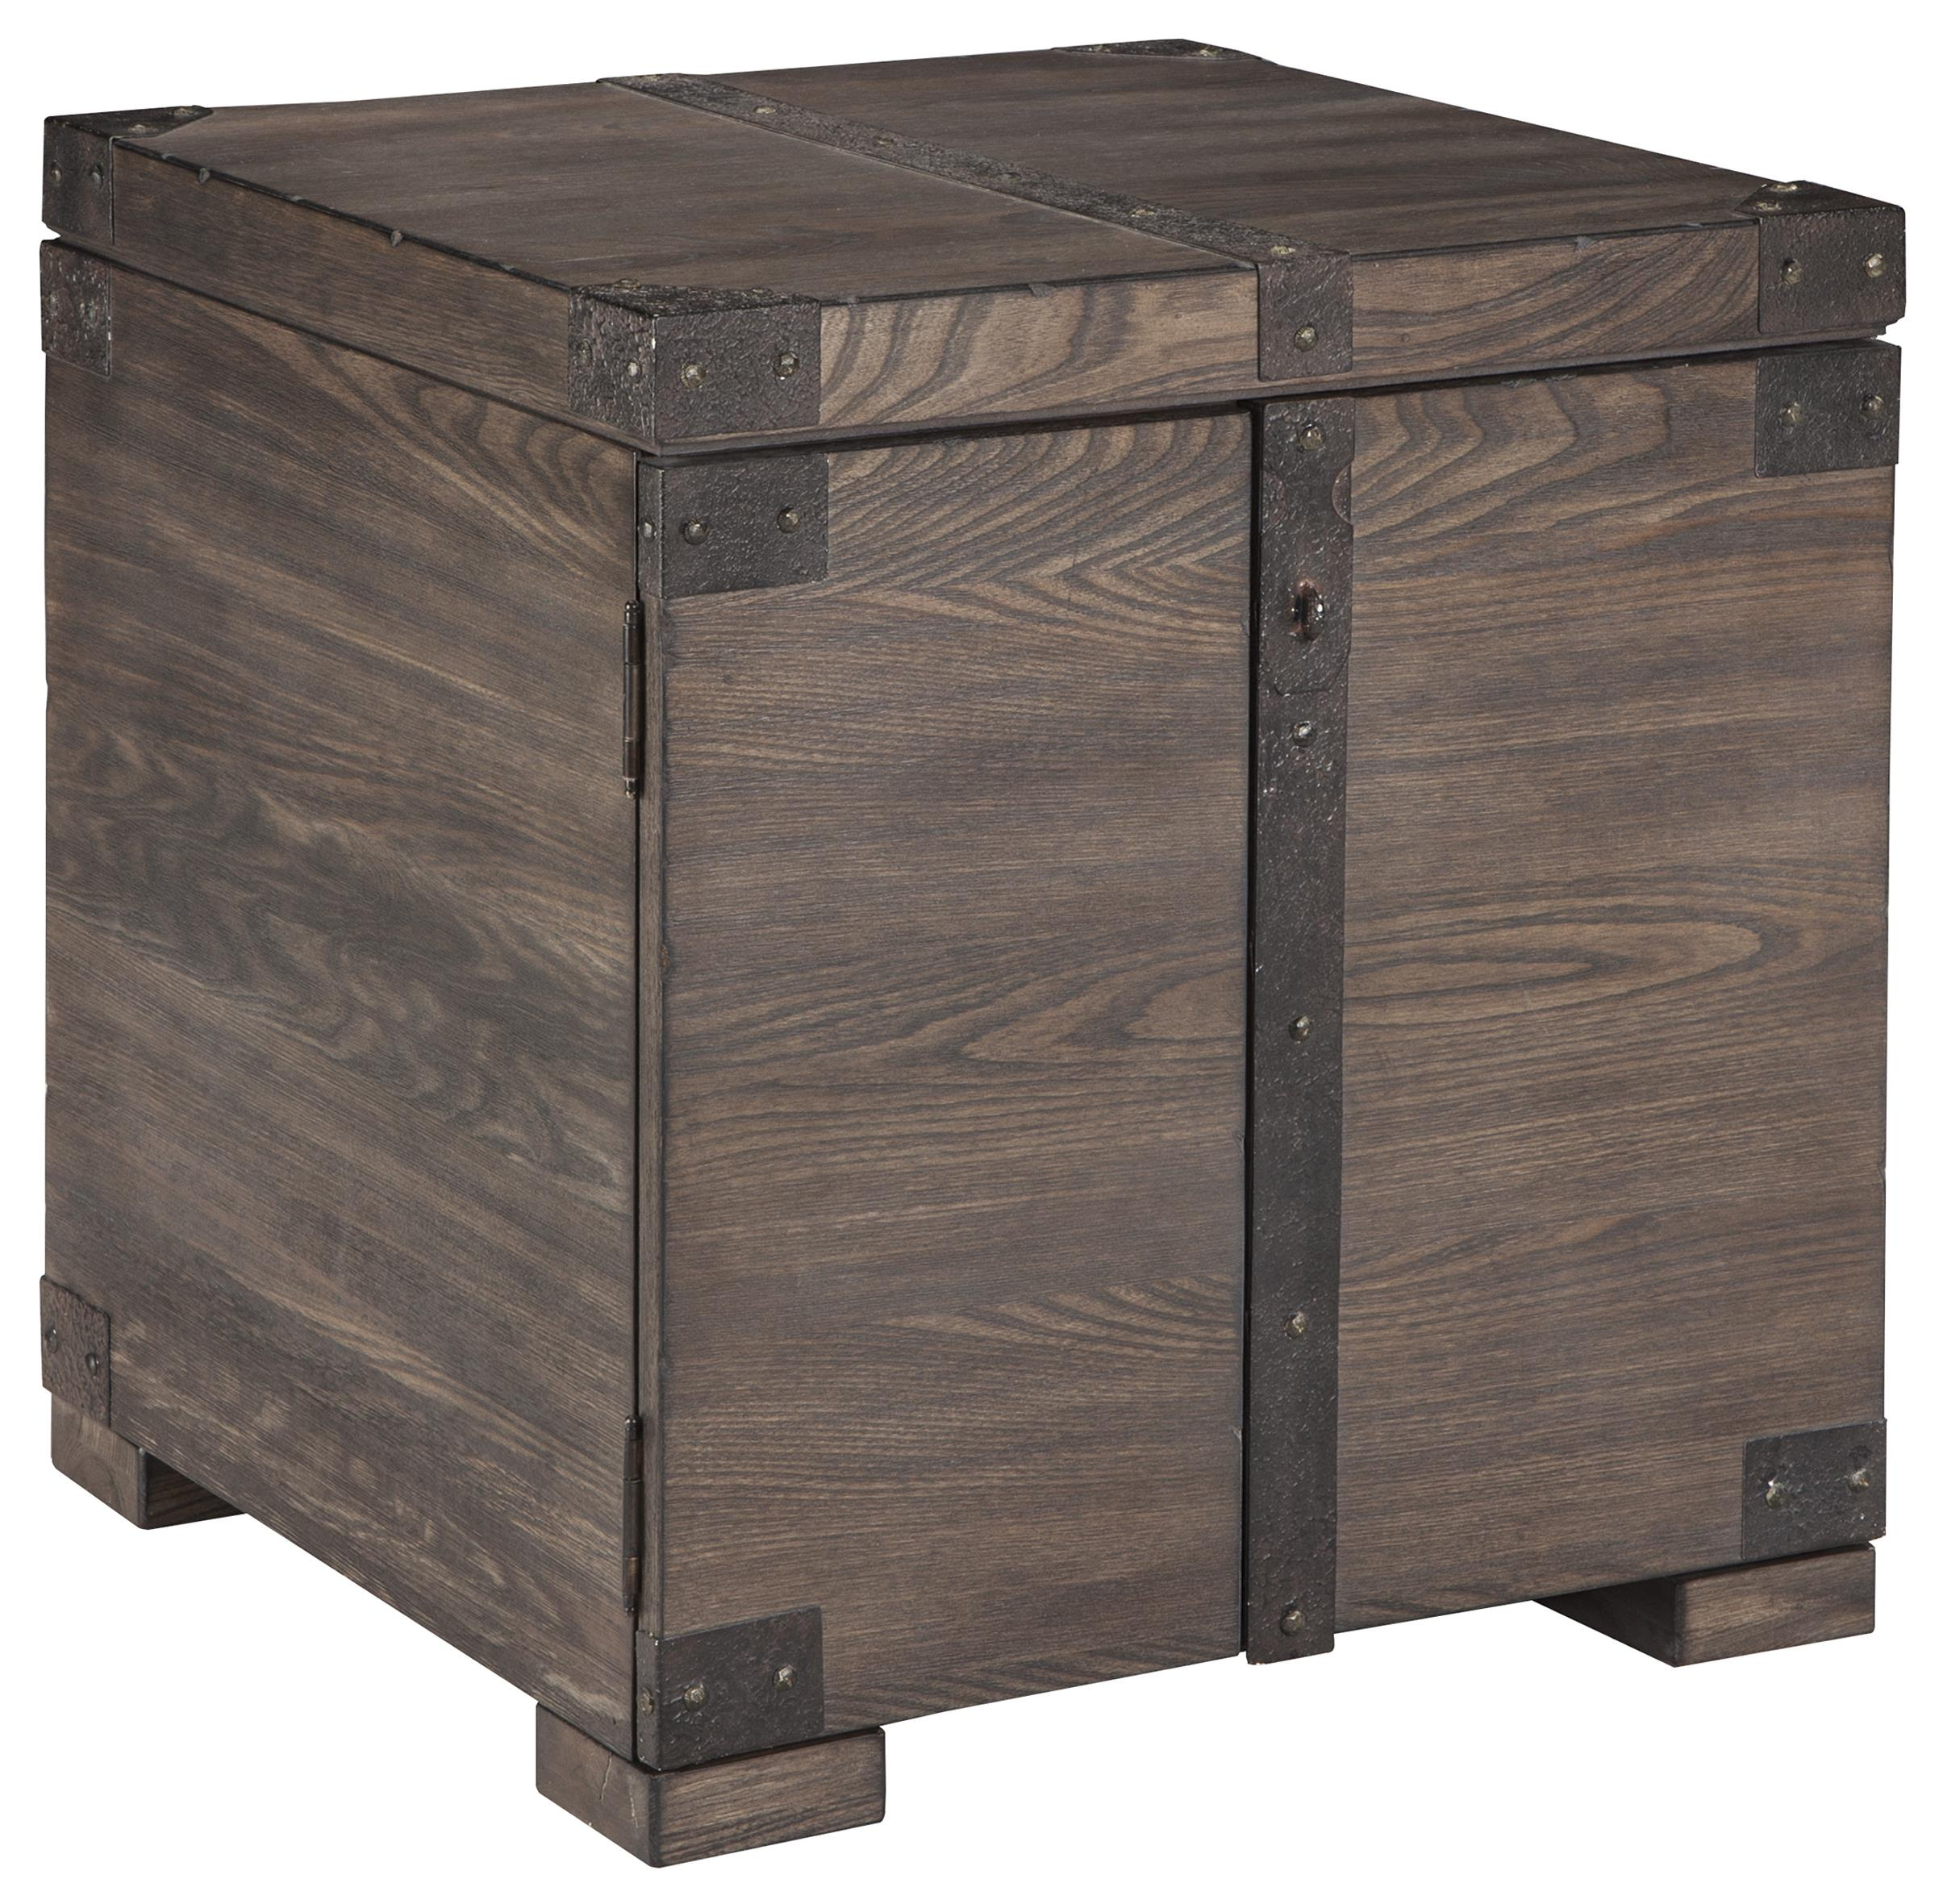 Signature Design by Ashley Burladen Square End Table - Item Number: T846-2